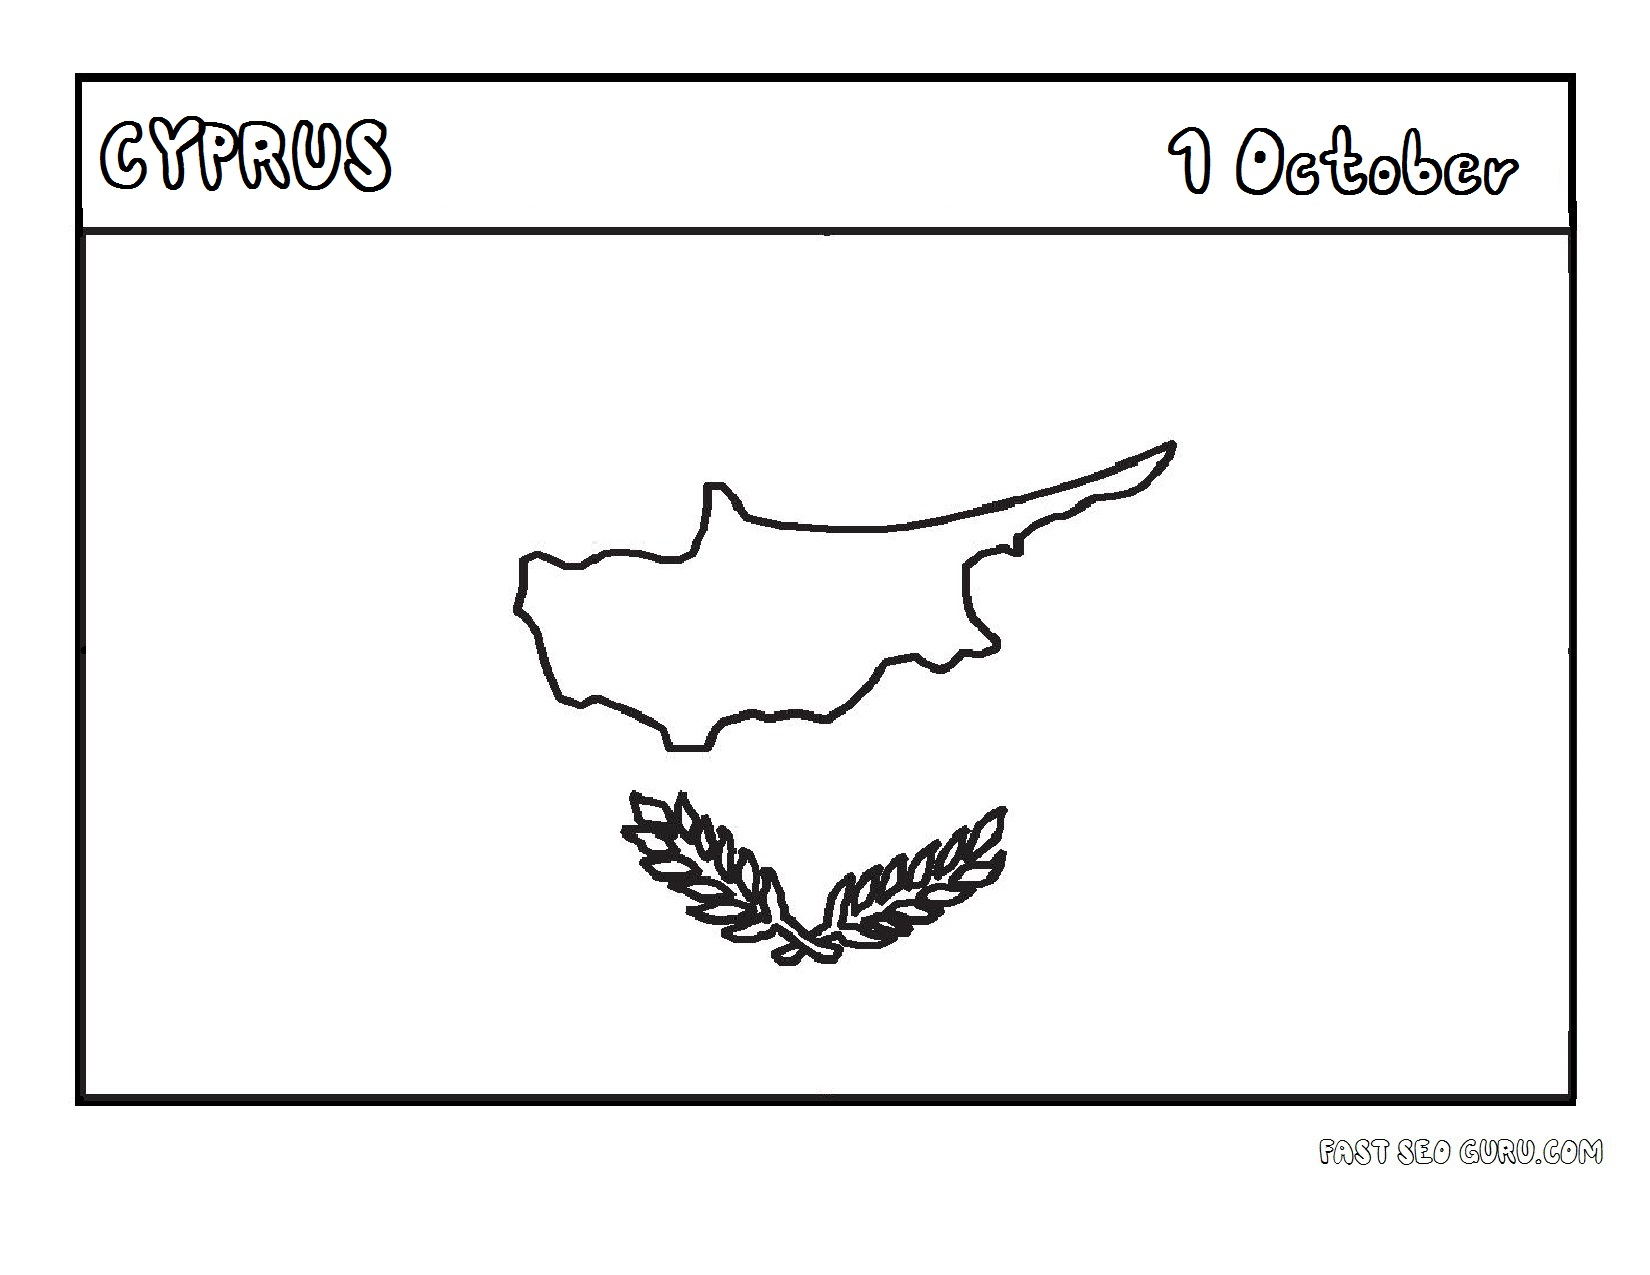 Account Wallpaper For 11 Girls Printable Flag Of Cyprus Coloring Page Printable